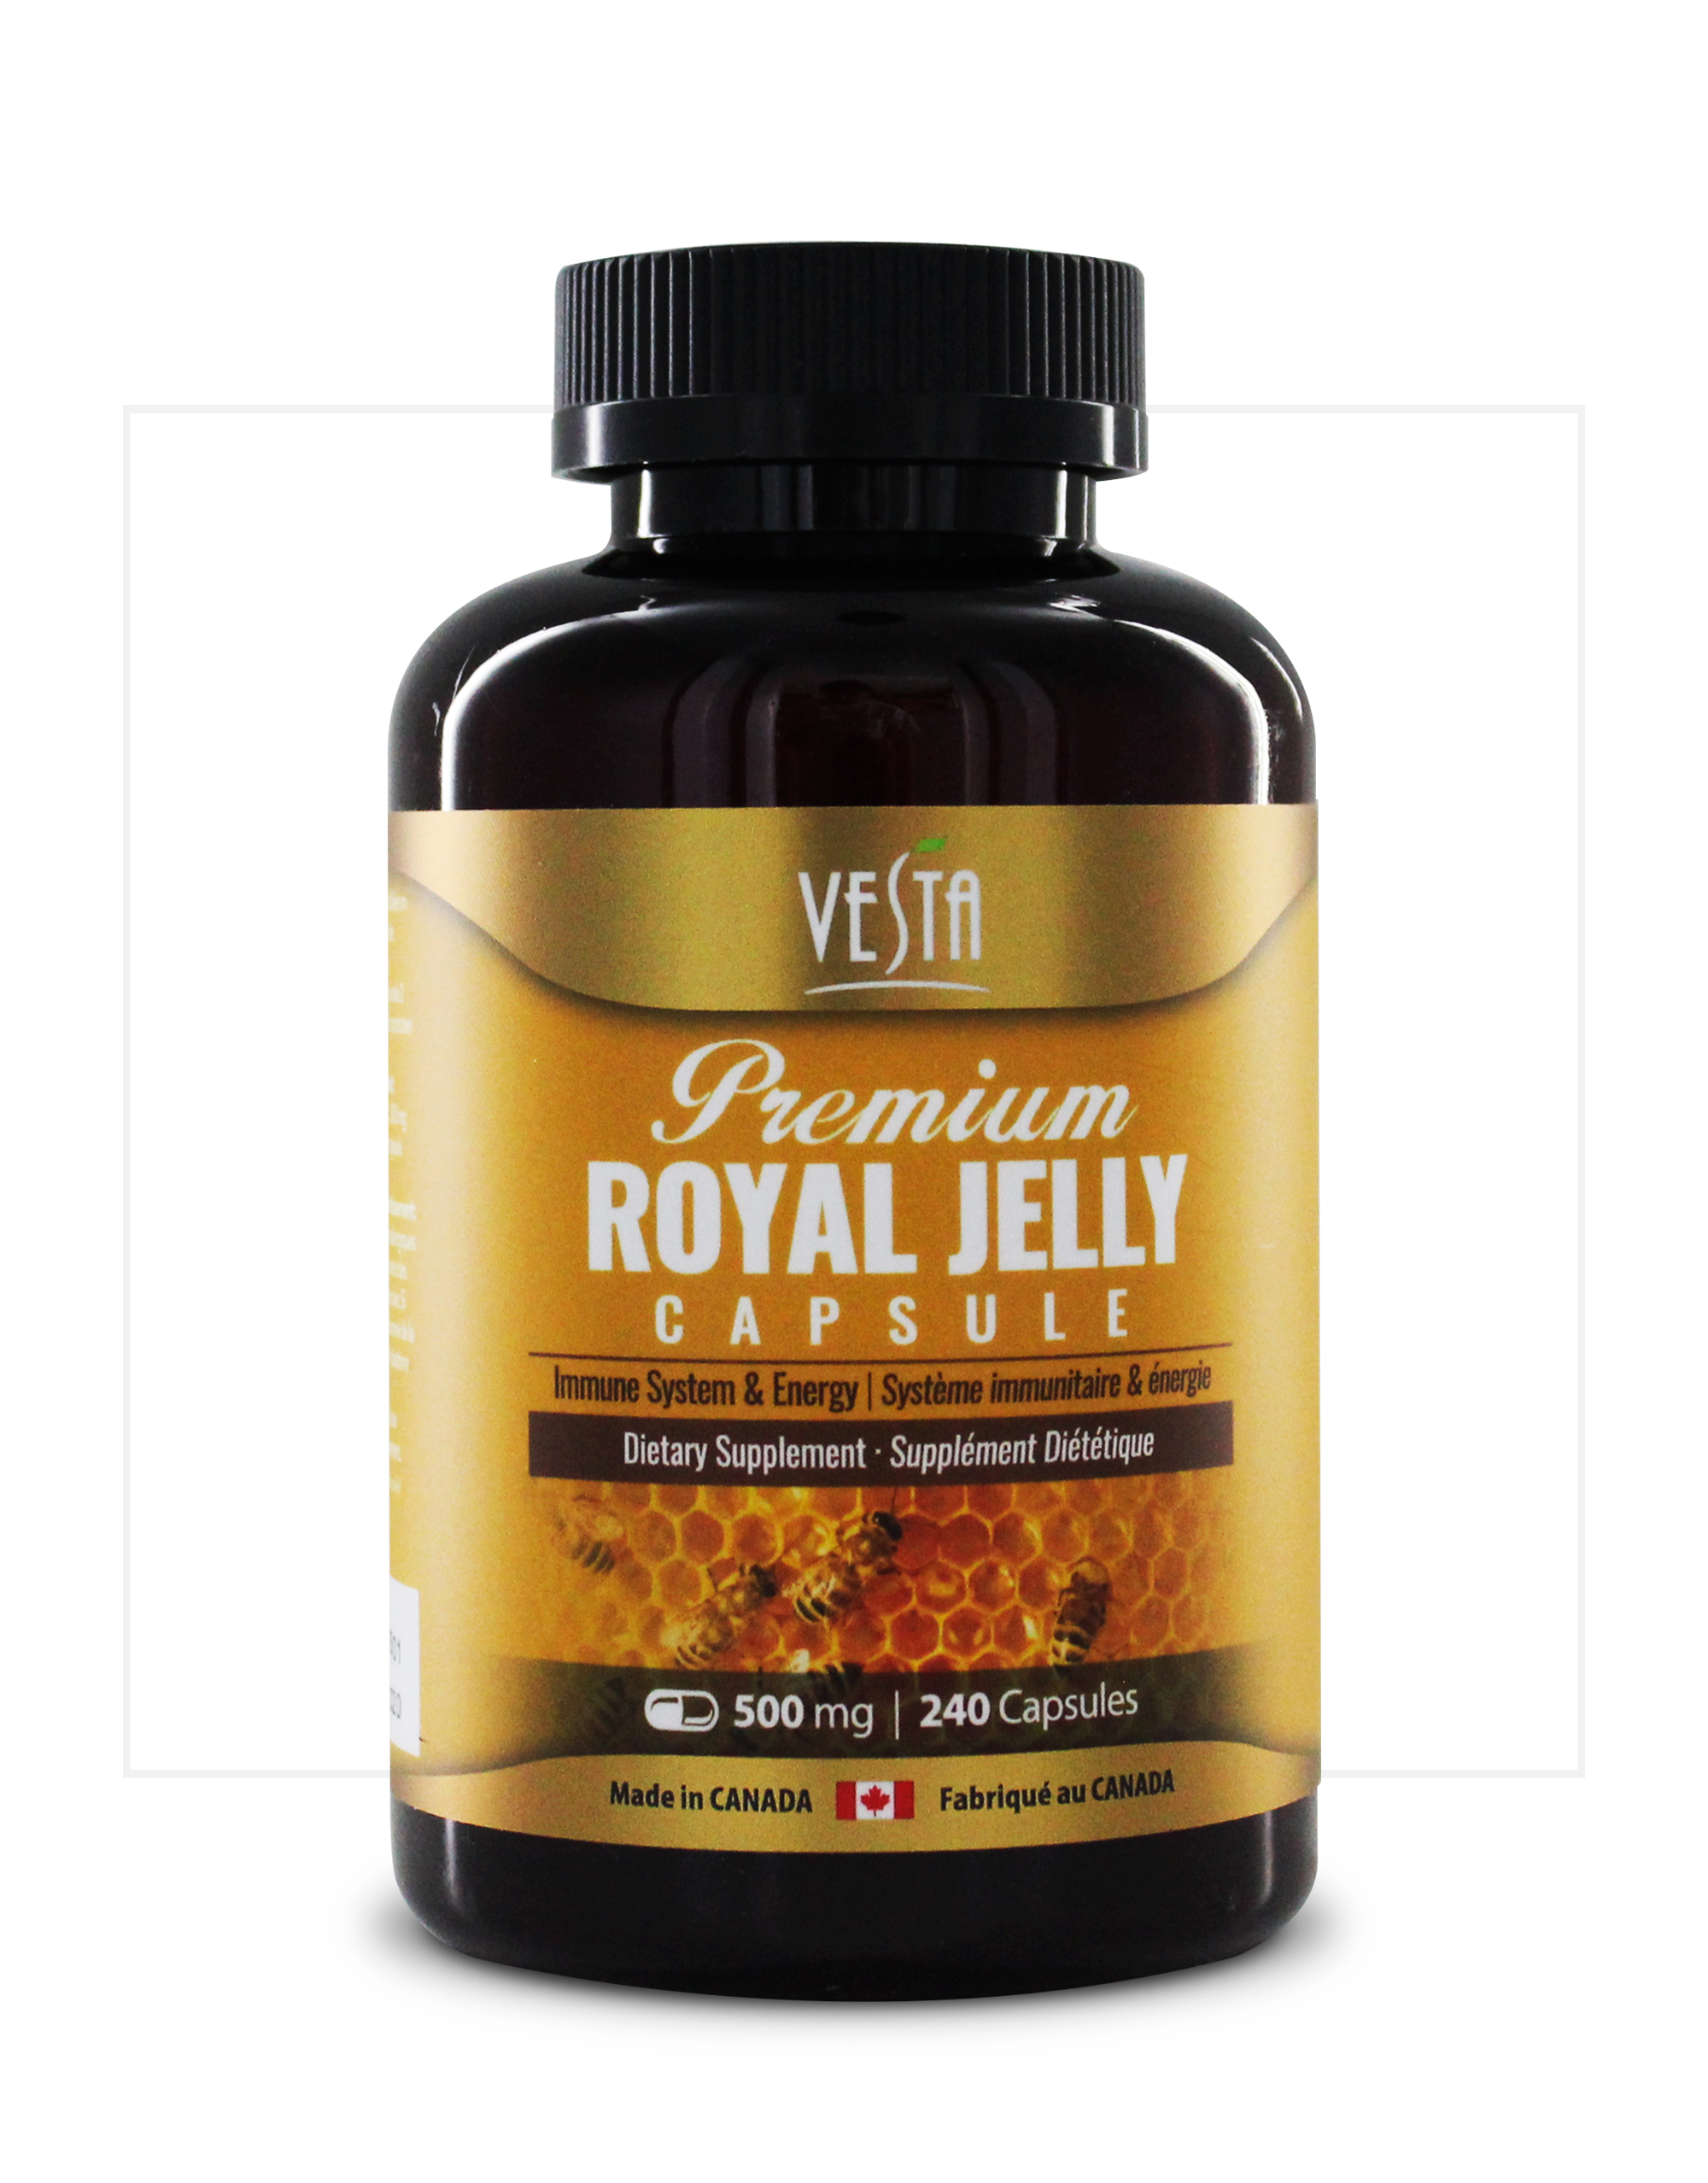 what is royal jelly What is royal jelly royal jelly is a protein-rich, glandular secretion – actually from the hypopharyngeal glands, which are a pair of long glands coiled in the sides of the heads of young worker honey bees.